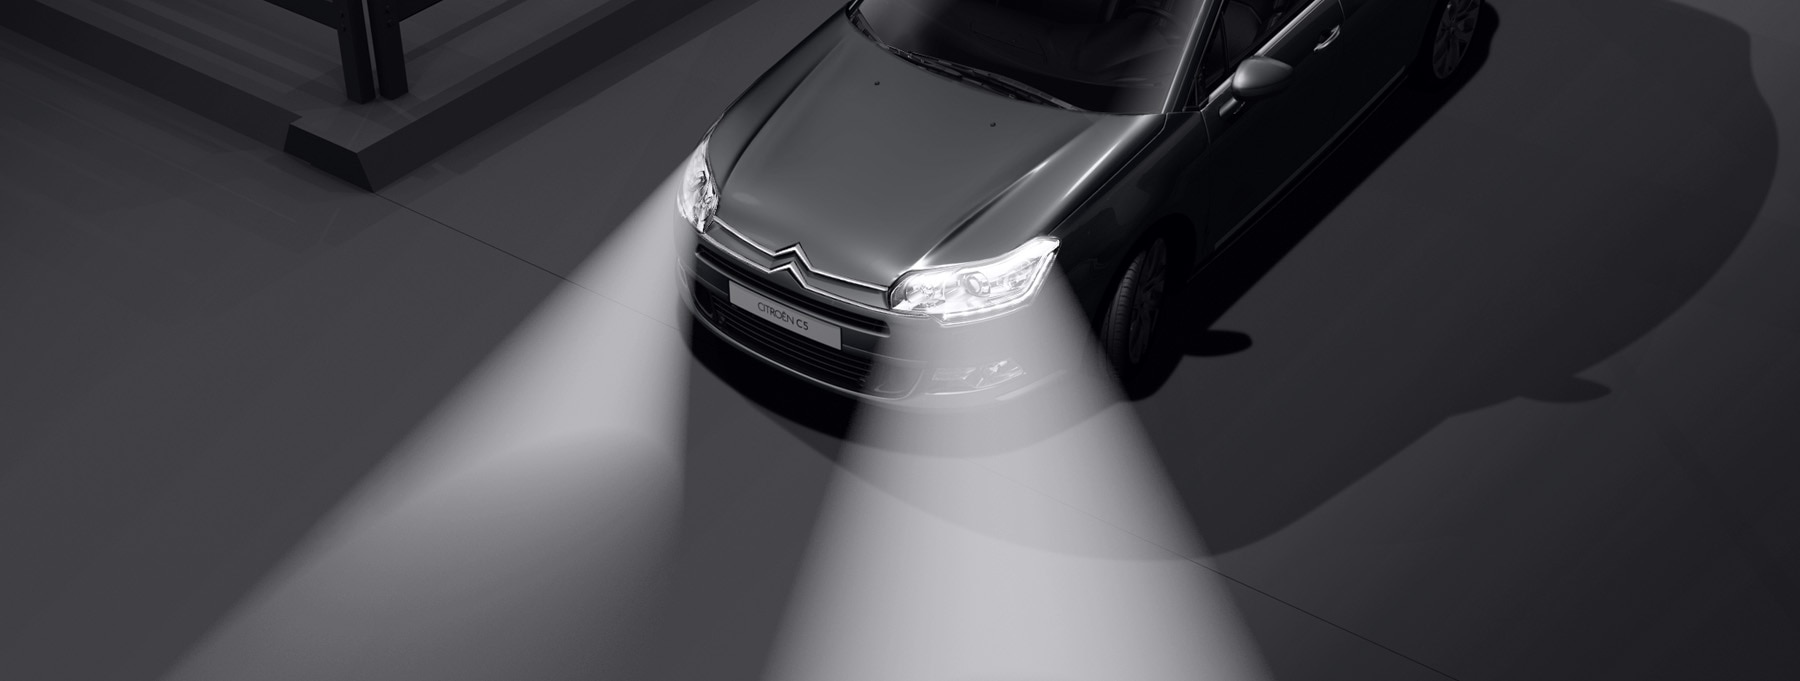 Safety - Xenon dual-function directional headlamps